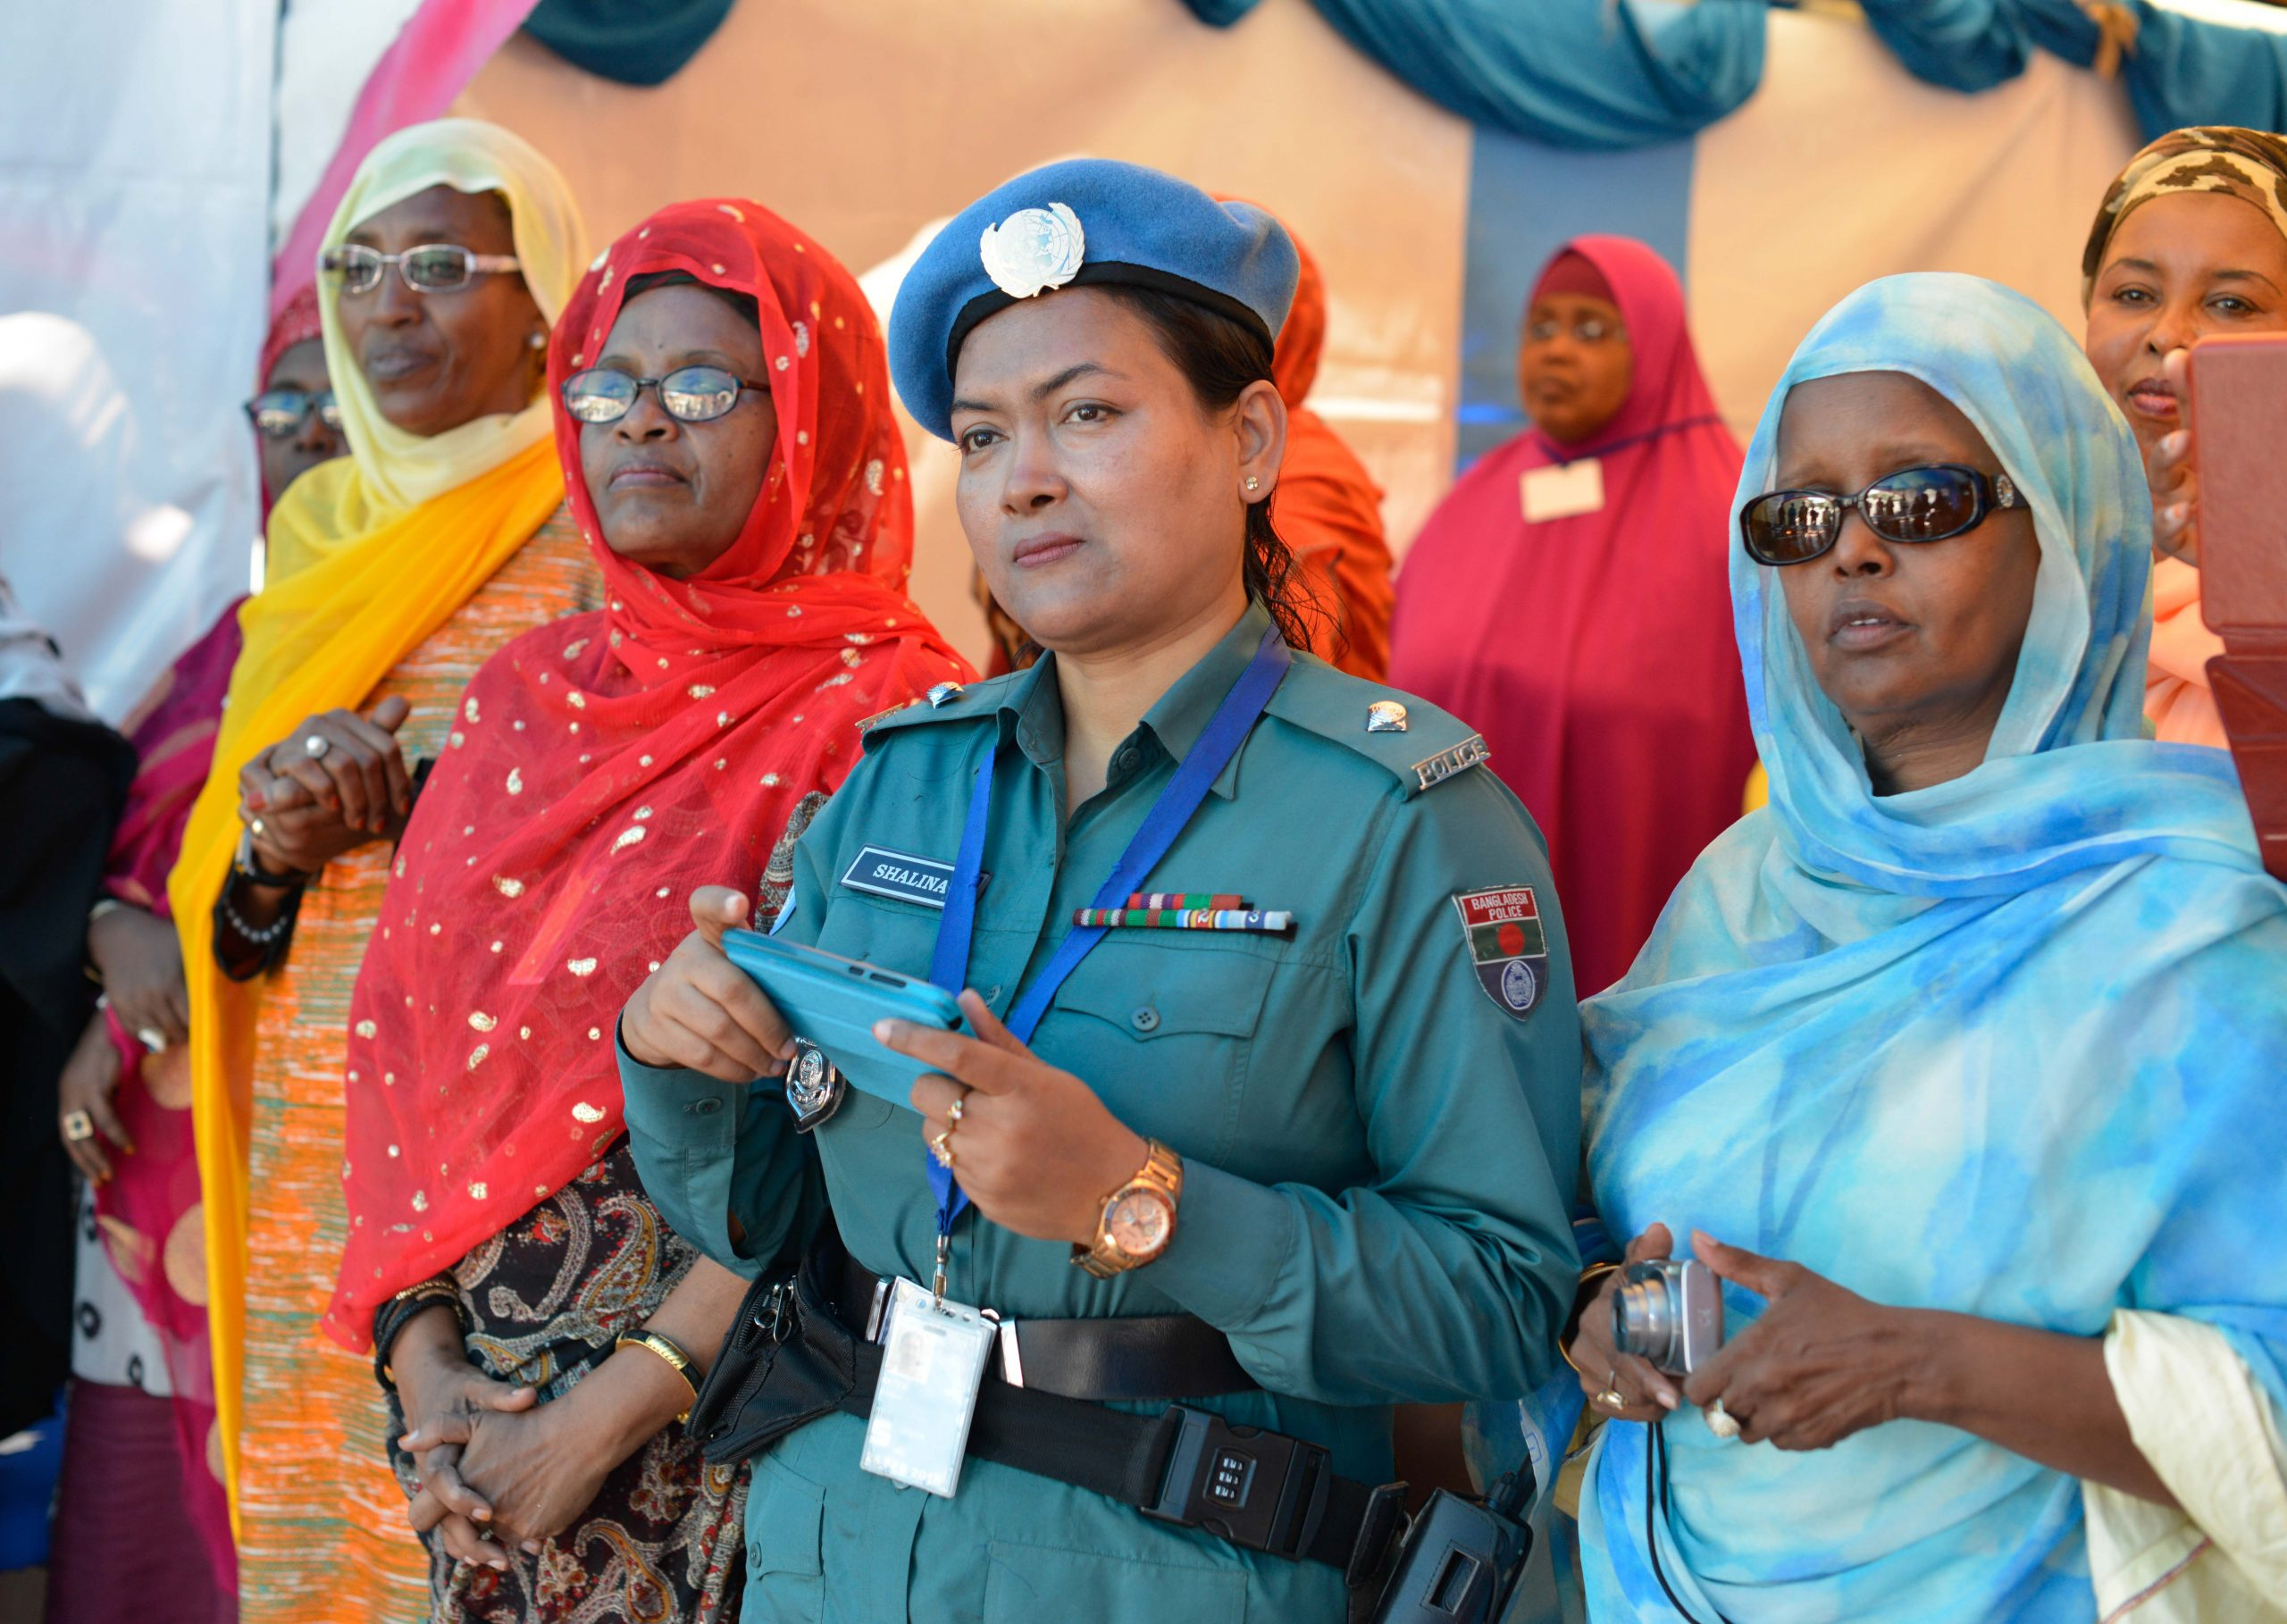 Girls, Peace and… Continued Militarism? Revisiting UNSCR 1325 and Its African Roots